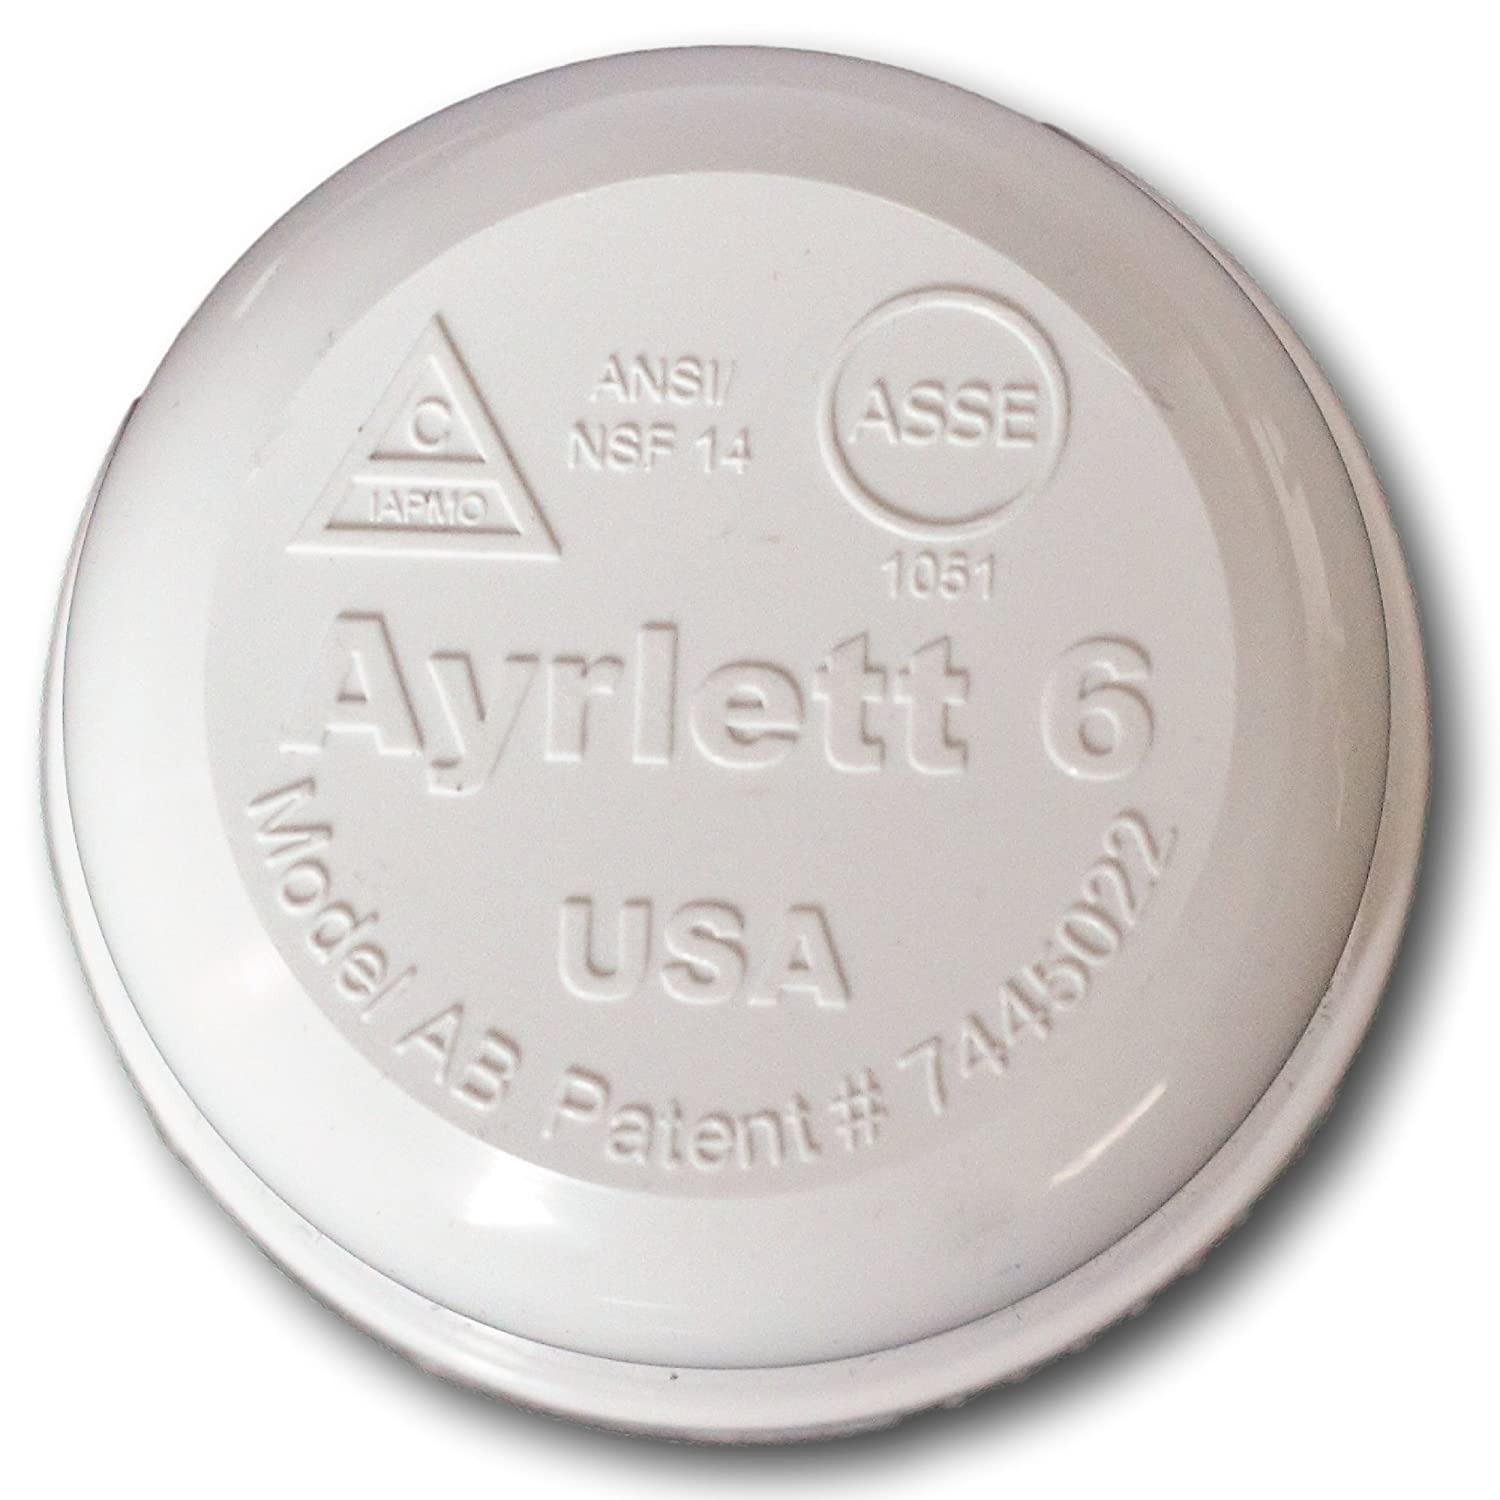 1.25 in - PVC Ayrlett PVC 1.25 Nut Replacement AAV for MHRV RV Vent Replacement Part